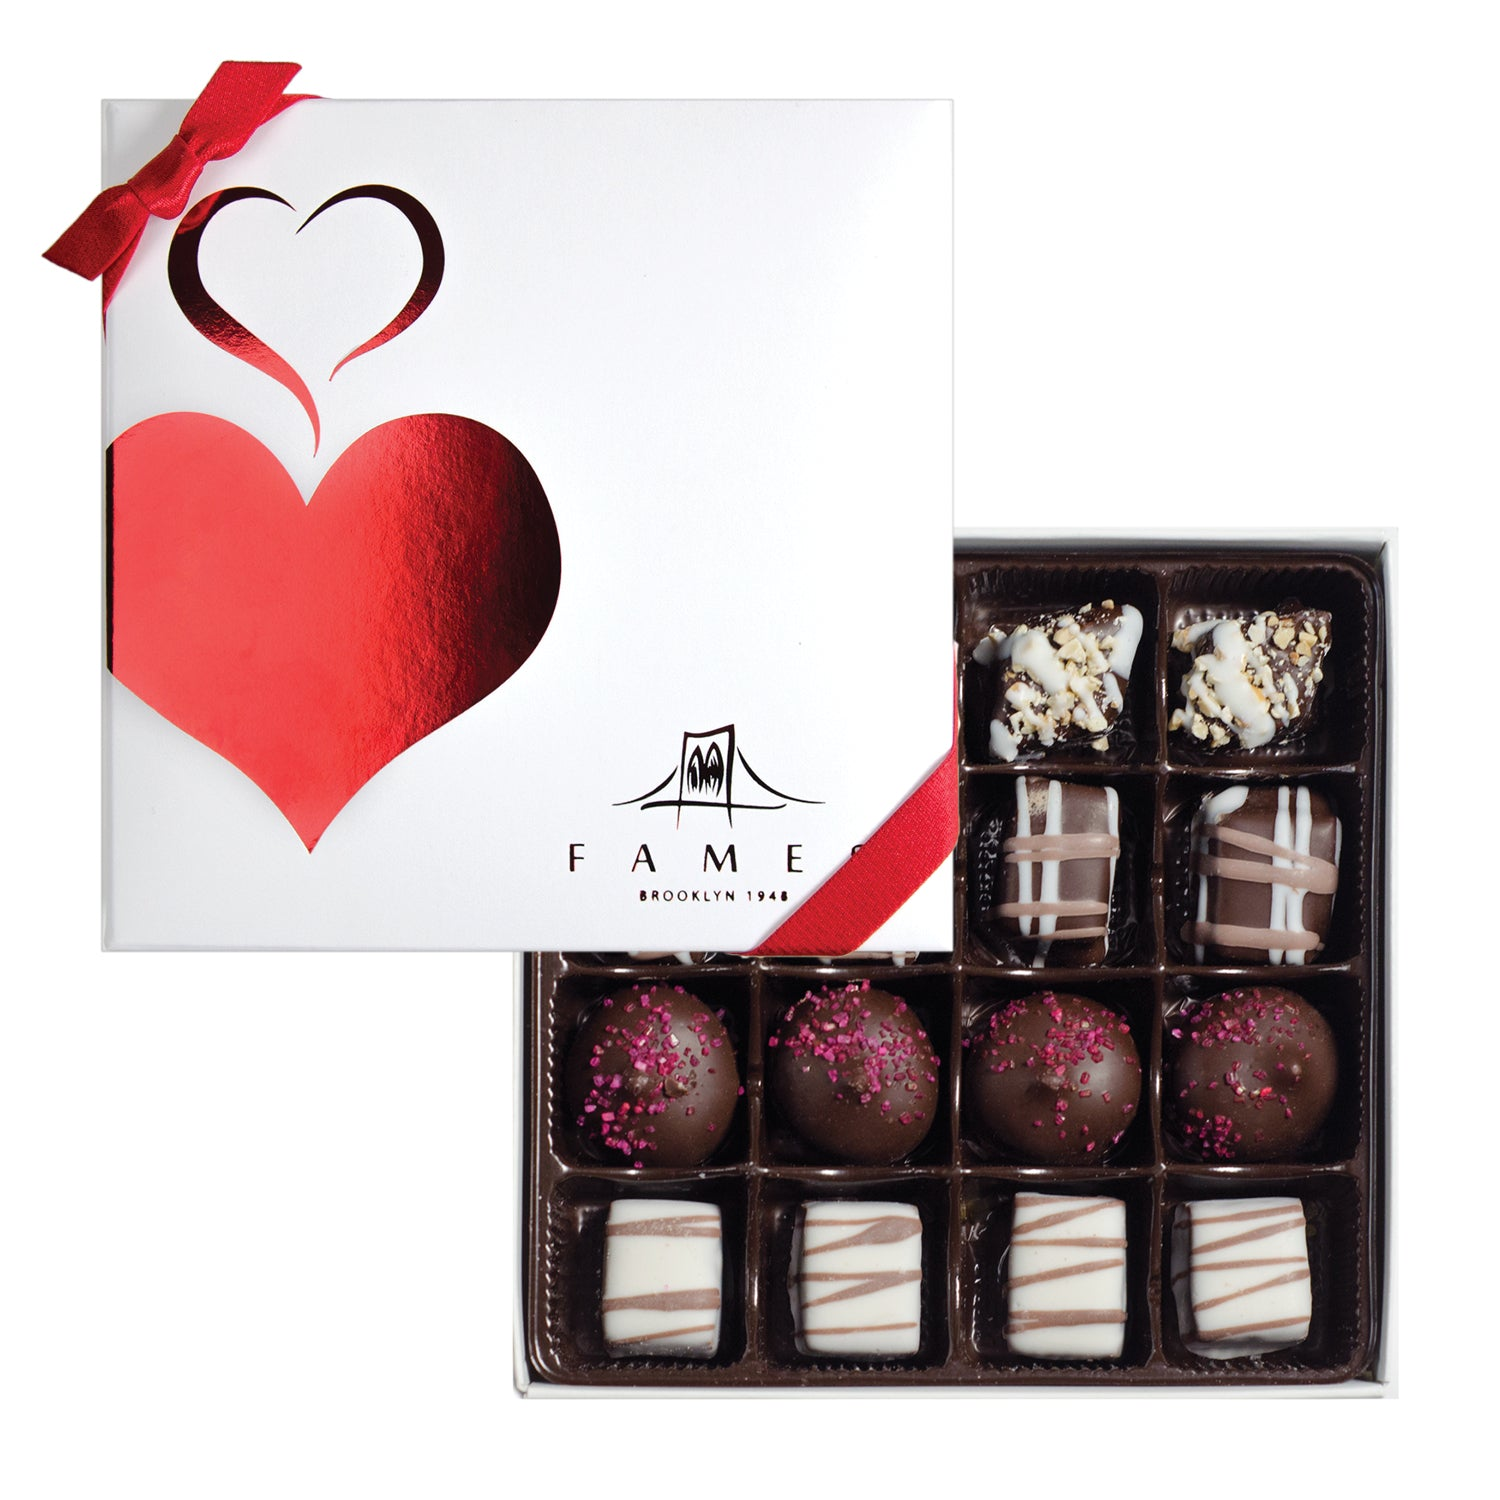 Fames Assorted Chocolate Gift Box